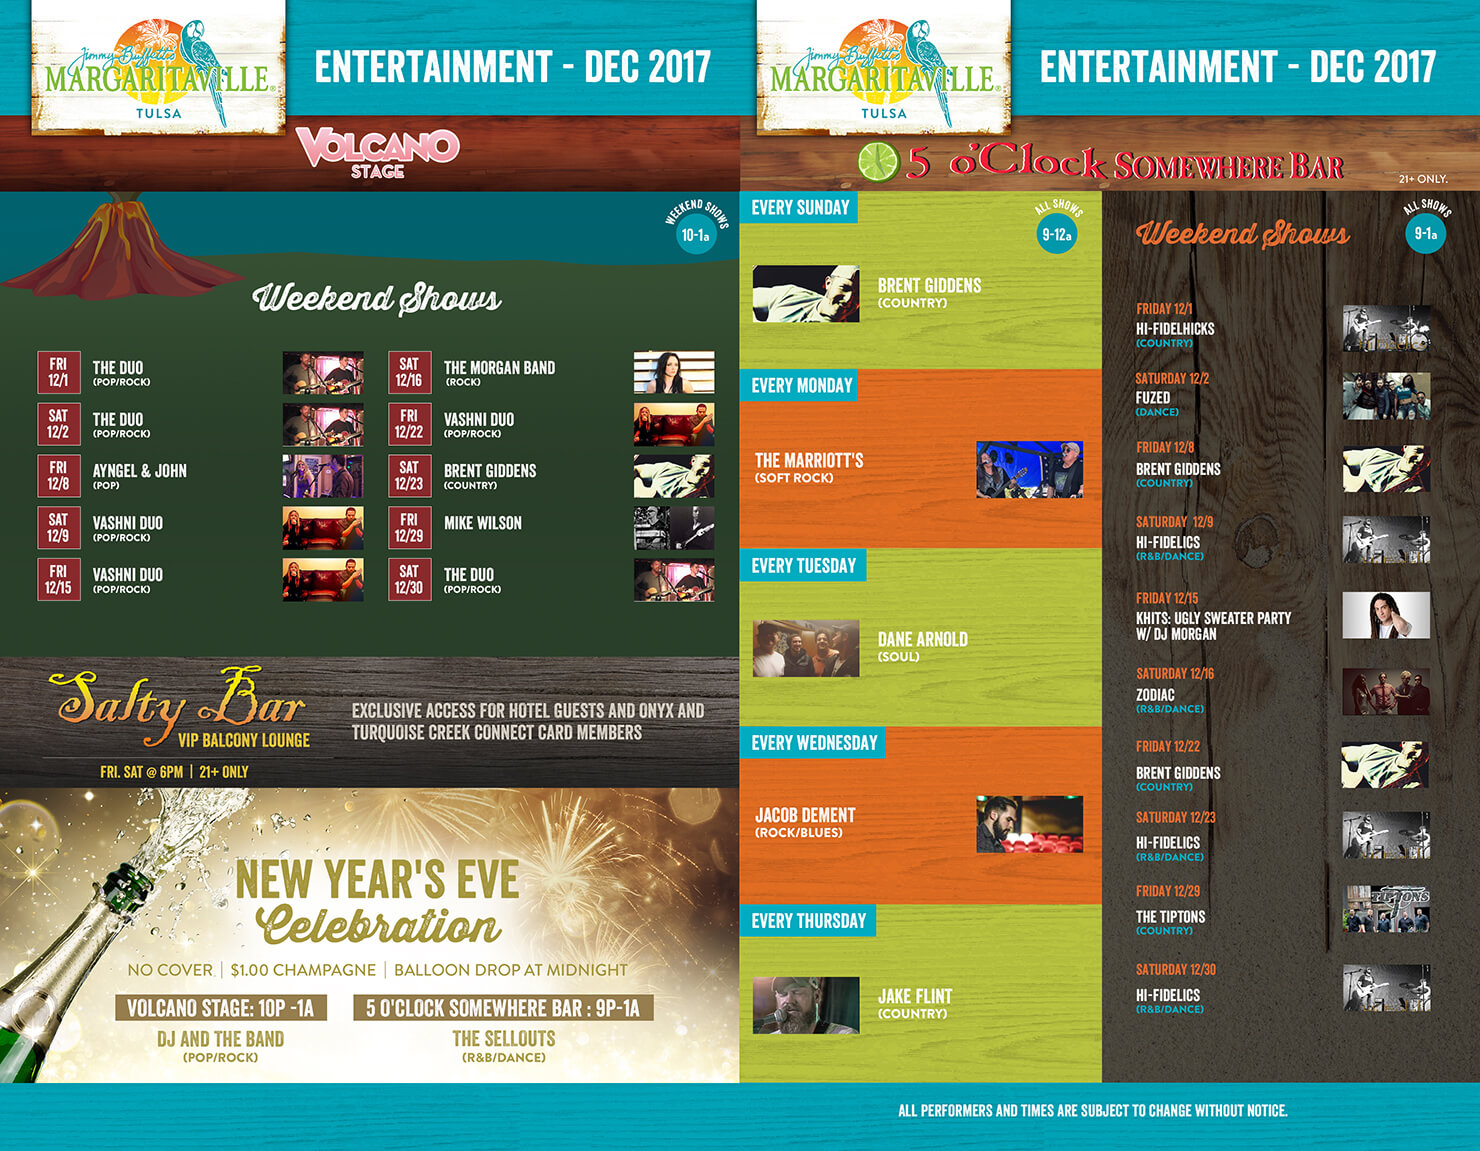 Margaritaville Tulsa October Calendar of Events